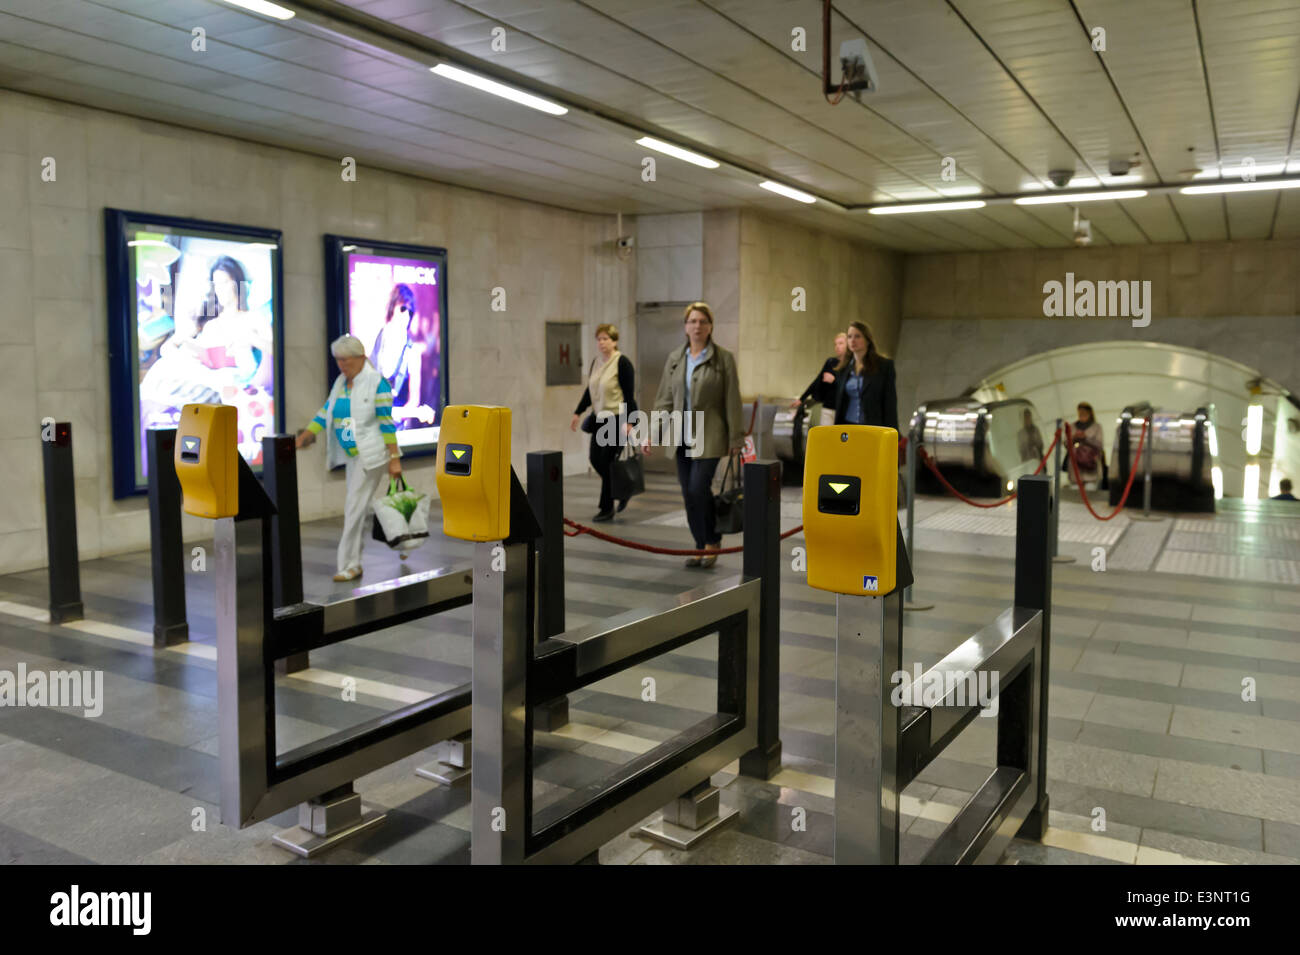 Commuters approaching the Validation ticket machines, Prague, Czech Republic. - Stock Image